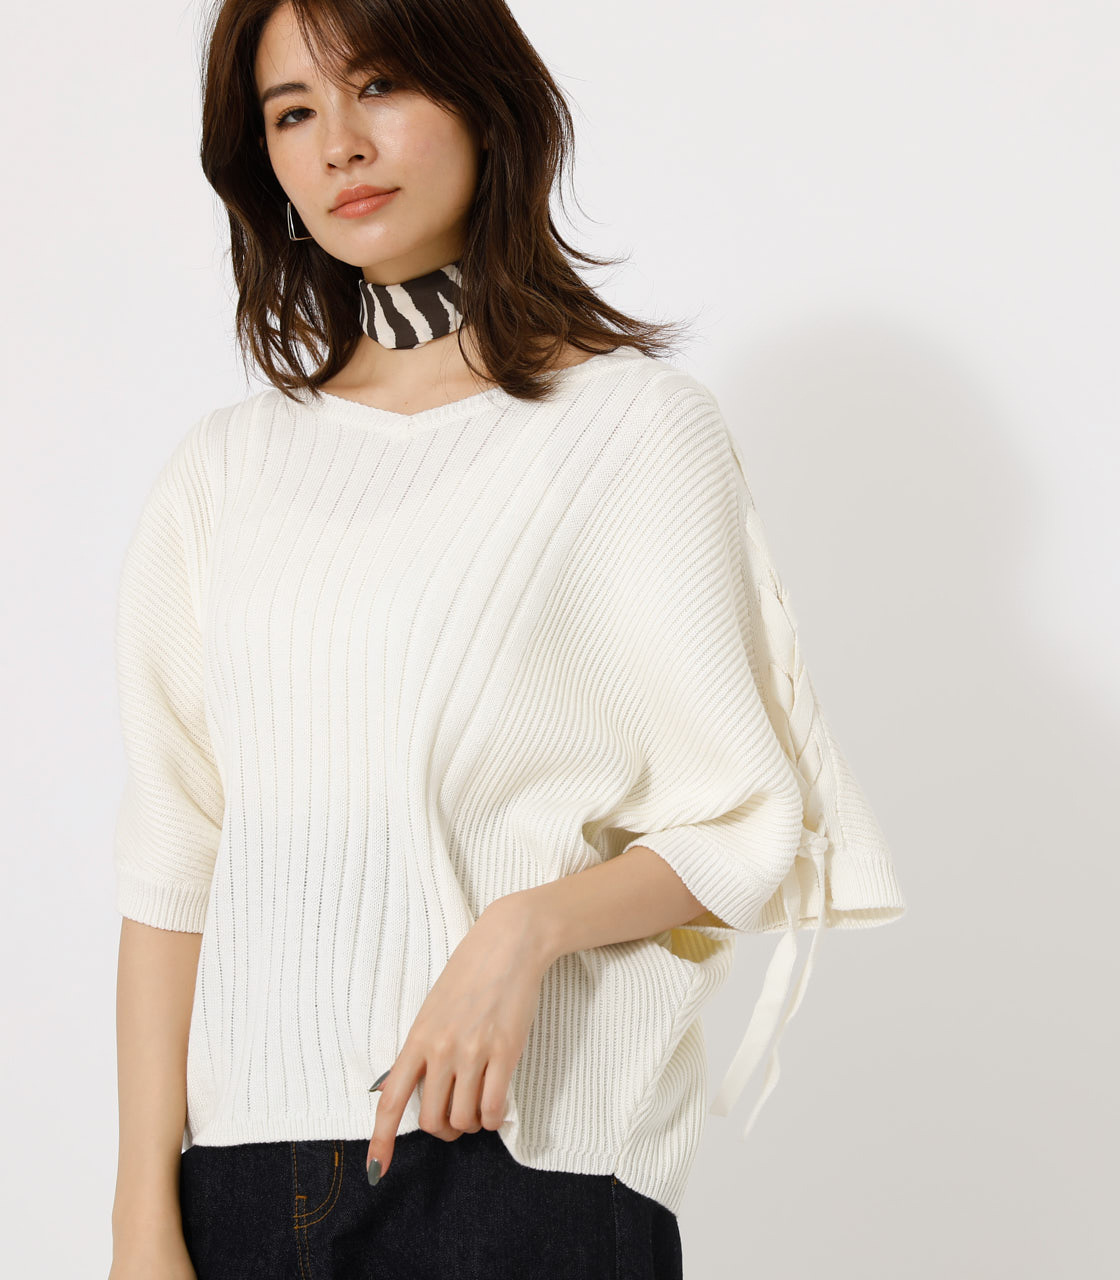 2WAY SHOULDER LACE-UP KNIT/2WAYショルダーレースアップニット 詳細画像 O/WHT 1